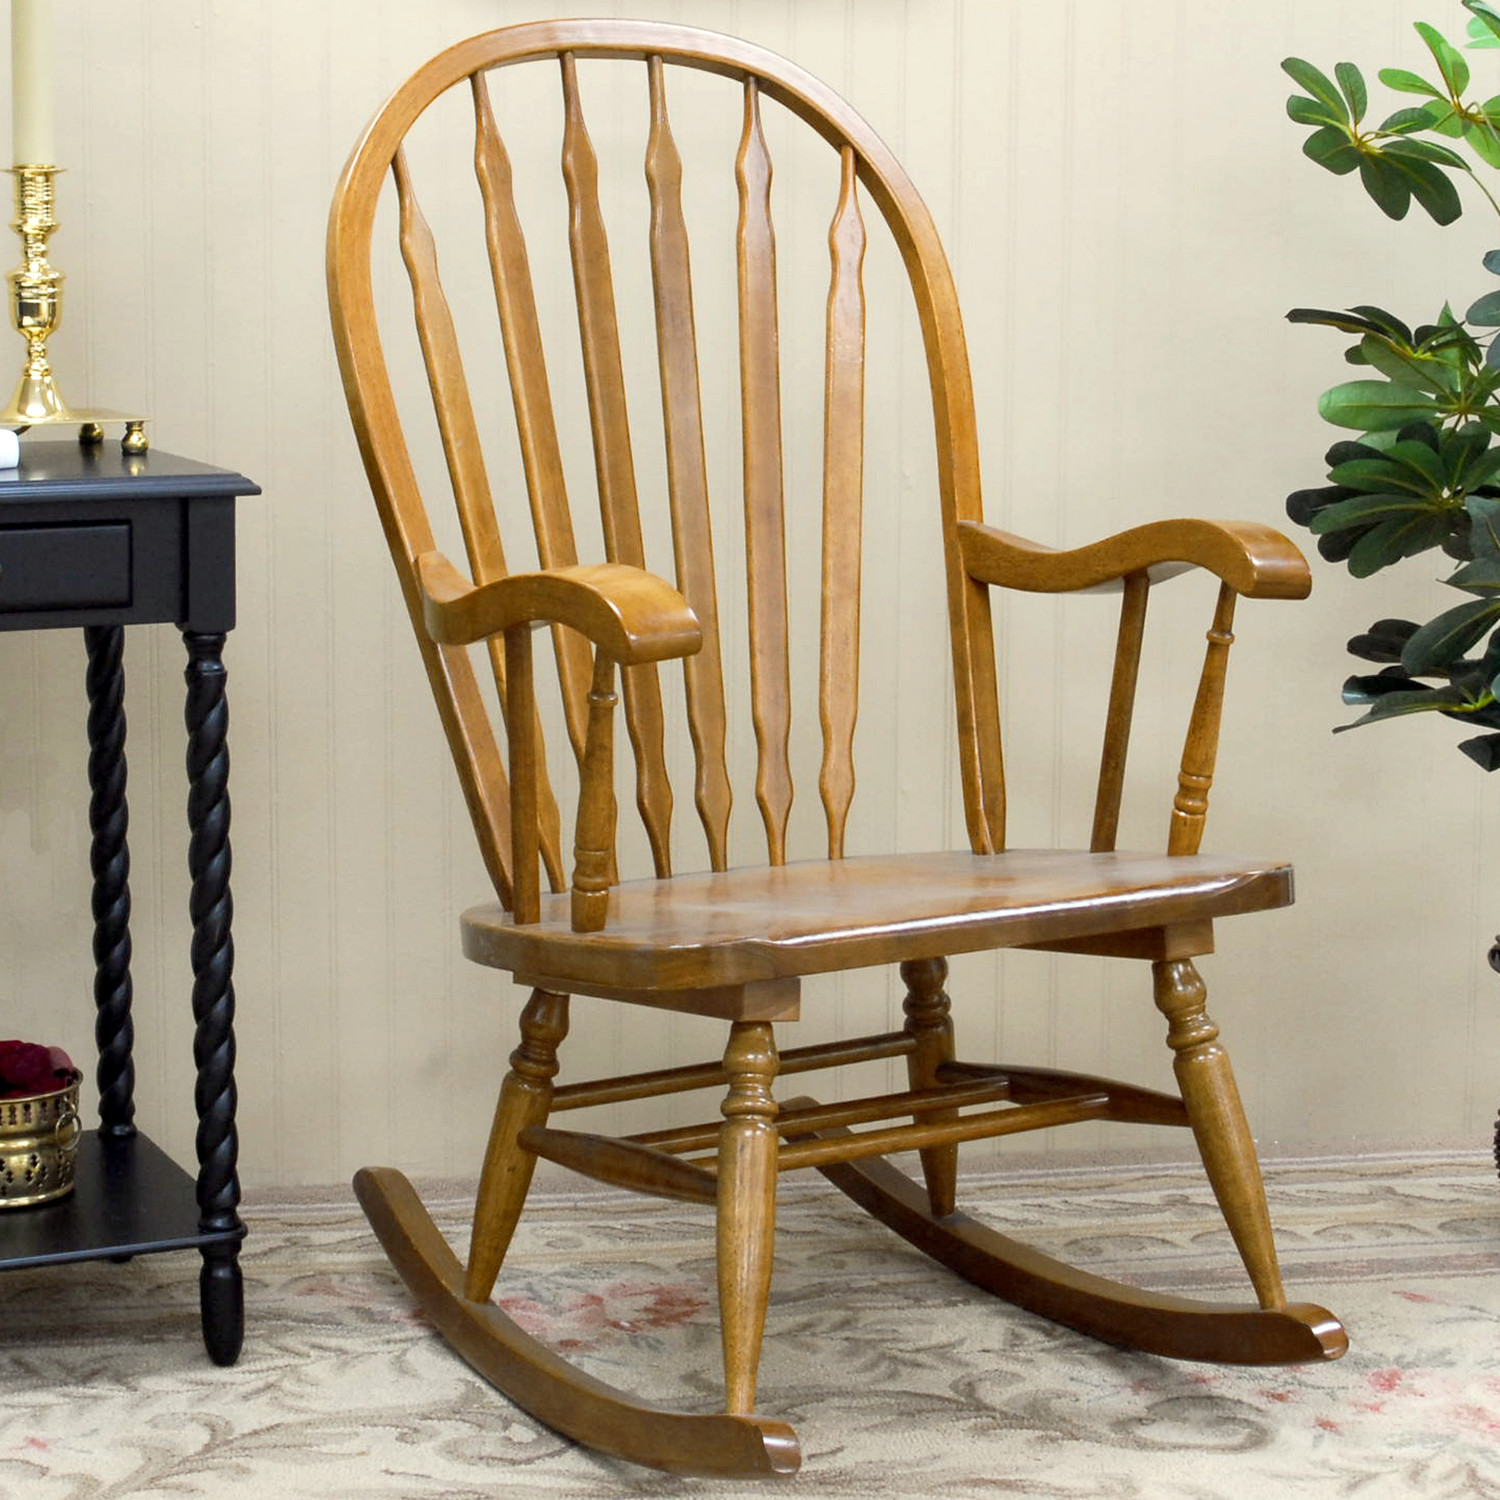 Rocking chair designs - Simple Elegant Rocking Chair Made Of Wood For Indoor